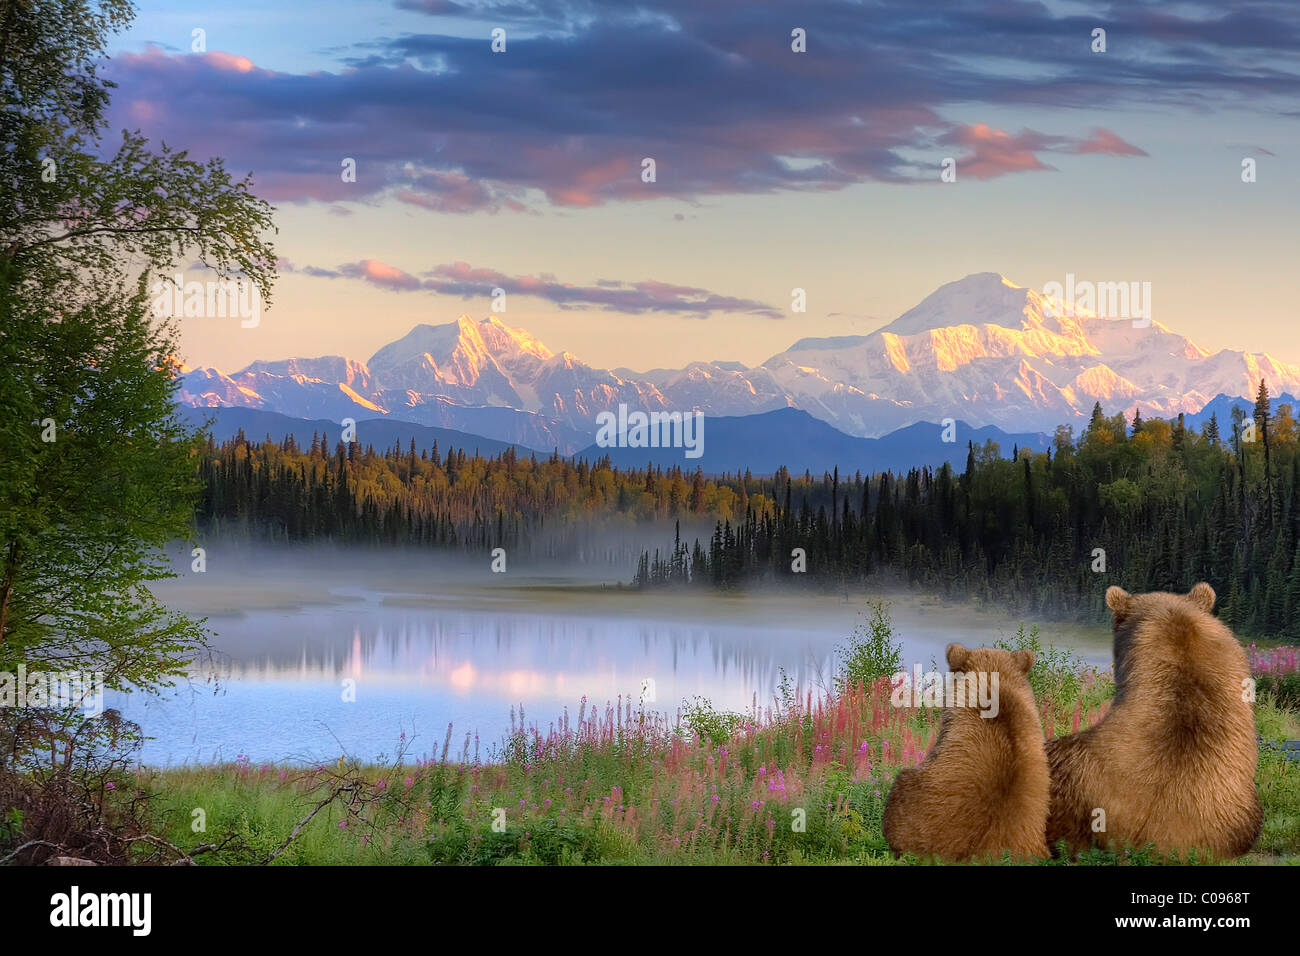 Sow and Cub brown bears looking across small lake and viewing Mt. McKinley at sunrise, SouthCentral Alaska, Autumn, - Stock Image